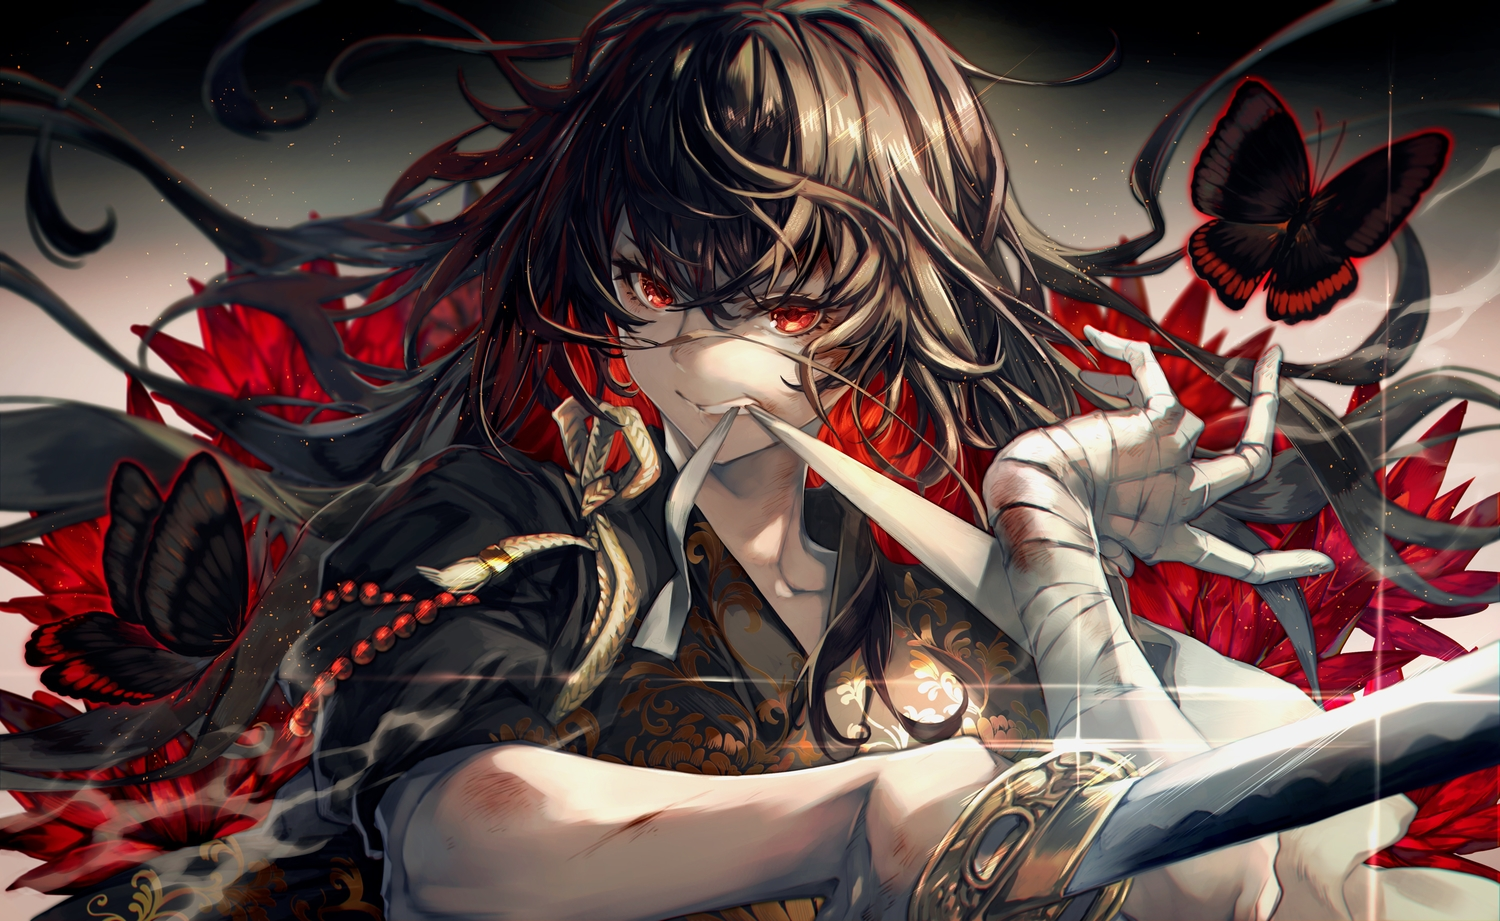 all_male bandage black_hair butterfly close gray_hair japanese_clothes katana long_hair male mito_itsuki original red_eyes sword weapon